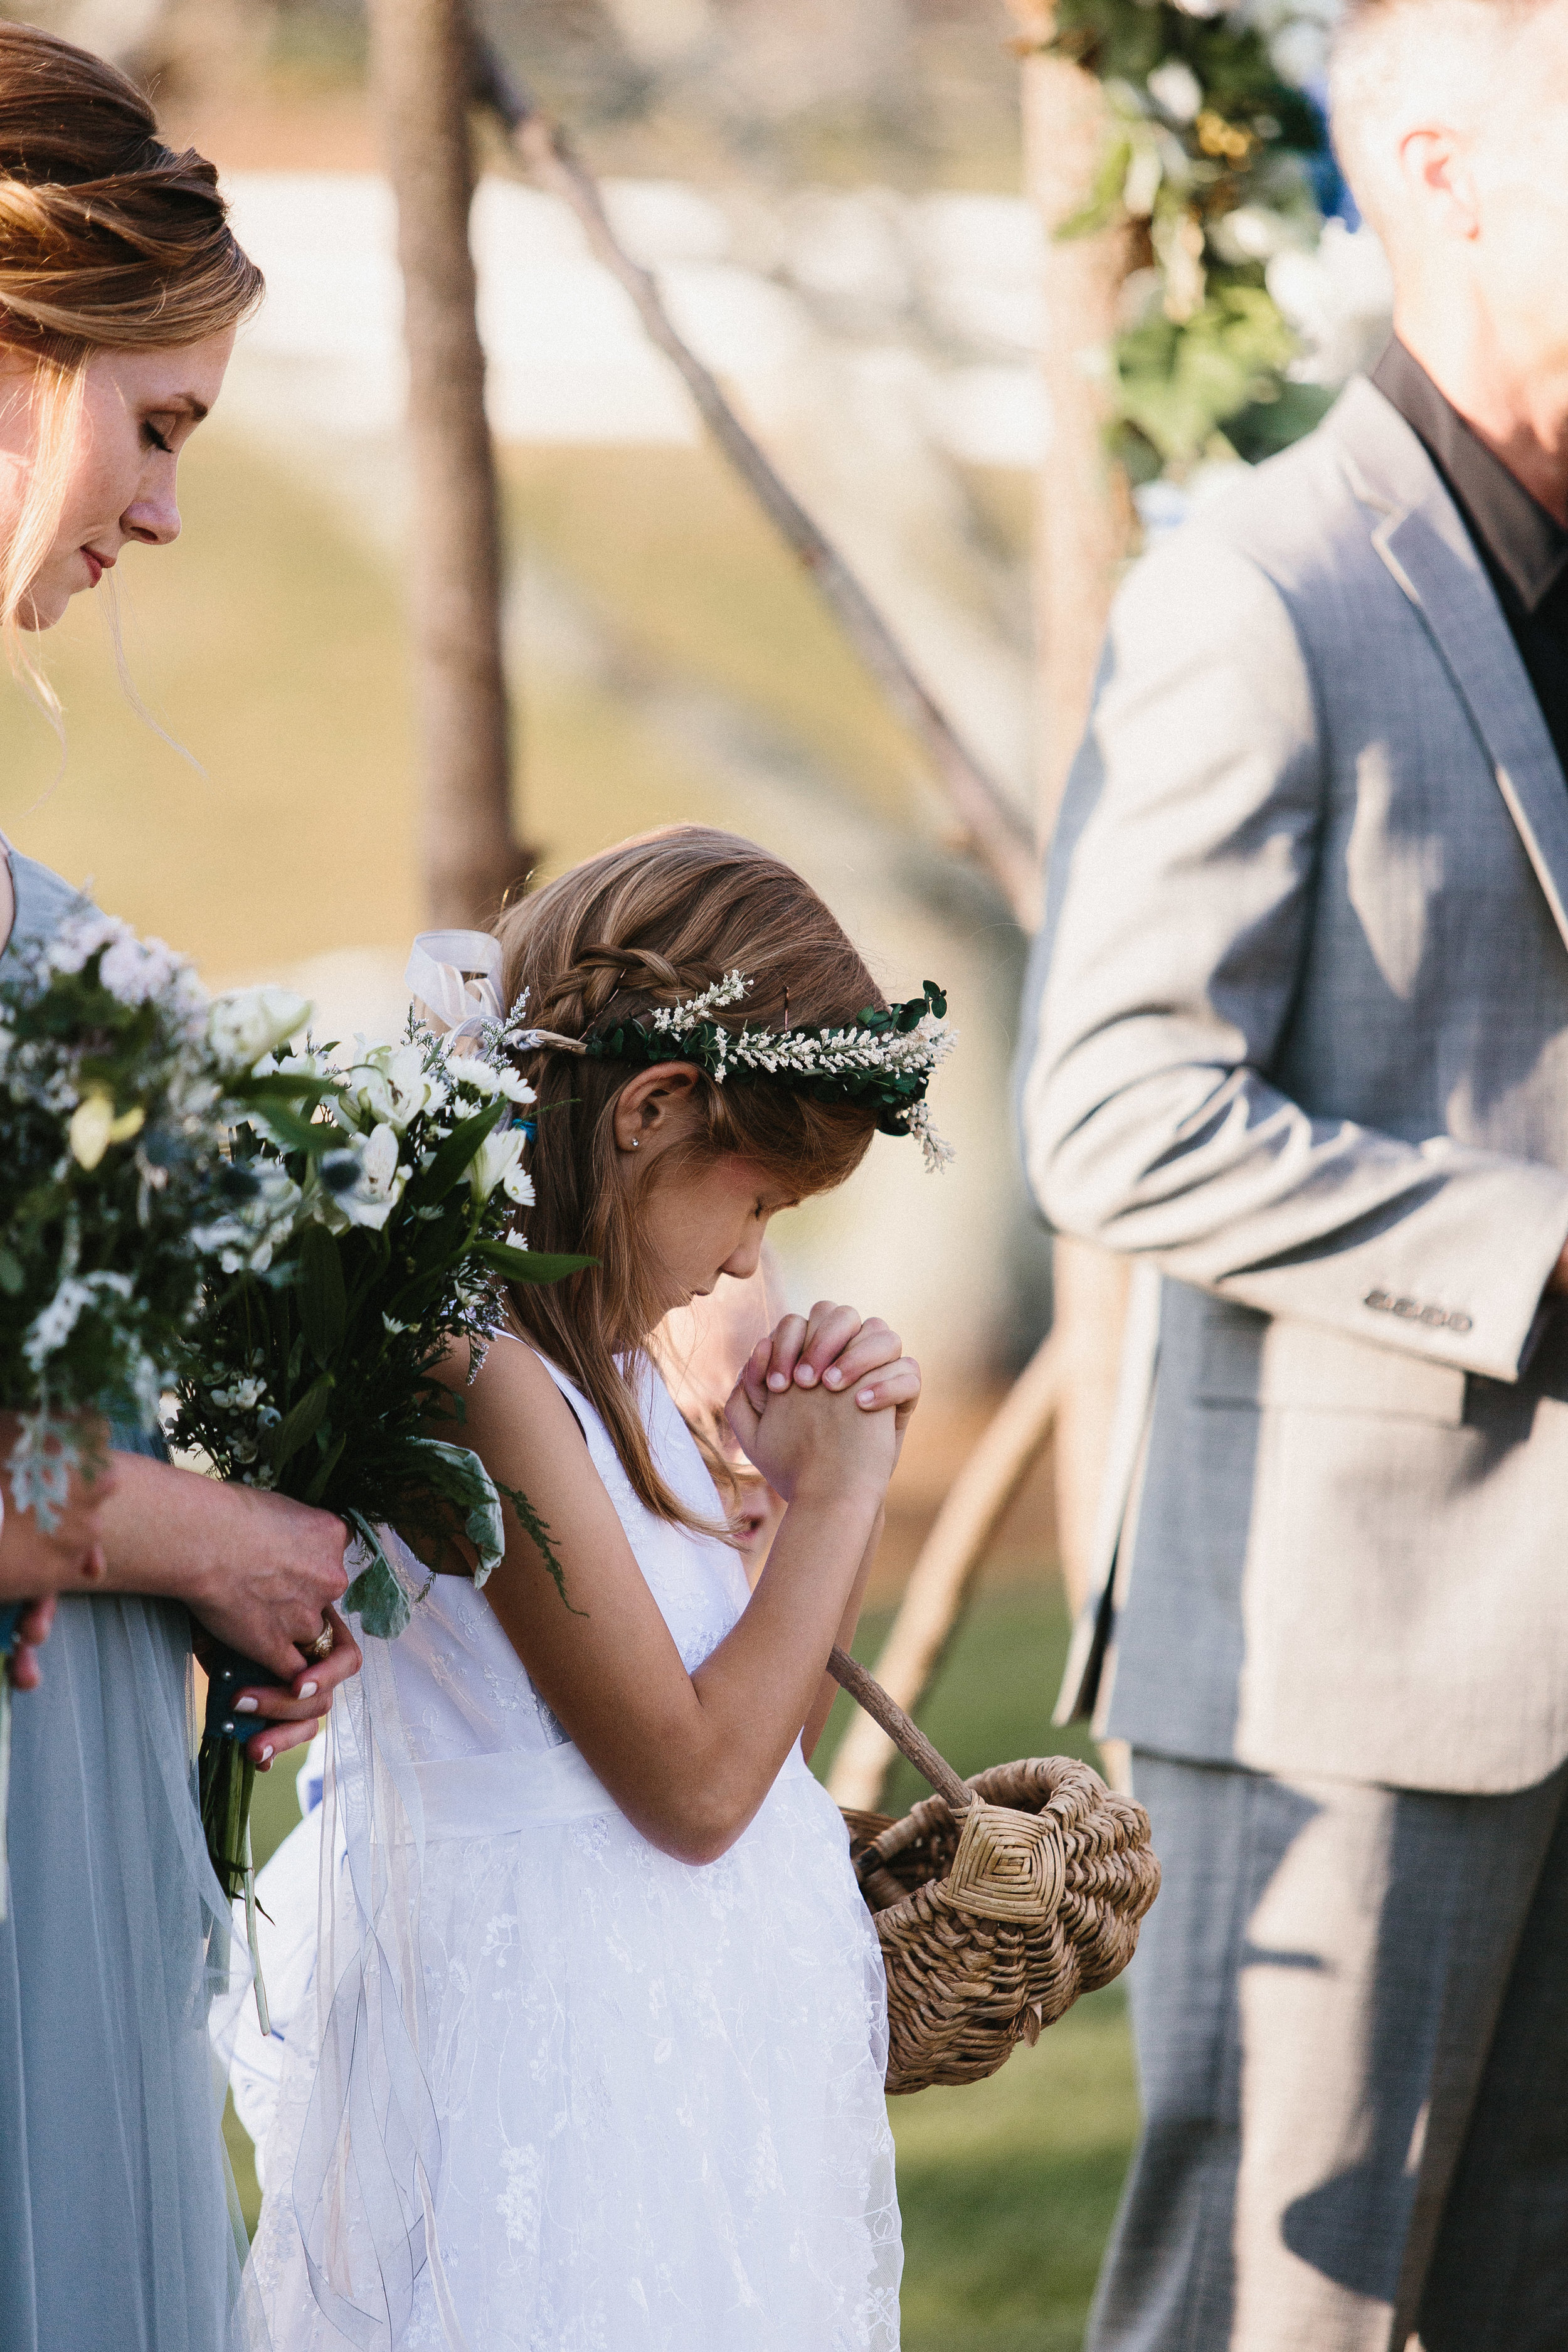 cleveland_georgia_mountain_laurel_farm_natural_classic_timeless_documentary_candid_wedding_emotional_photojournalism_river_west_1644.jpg